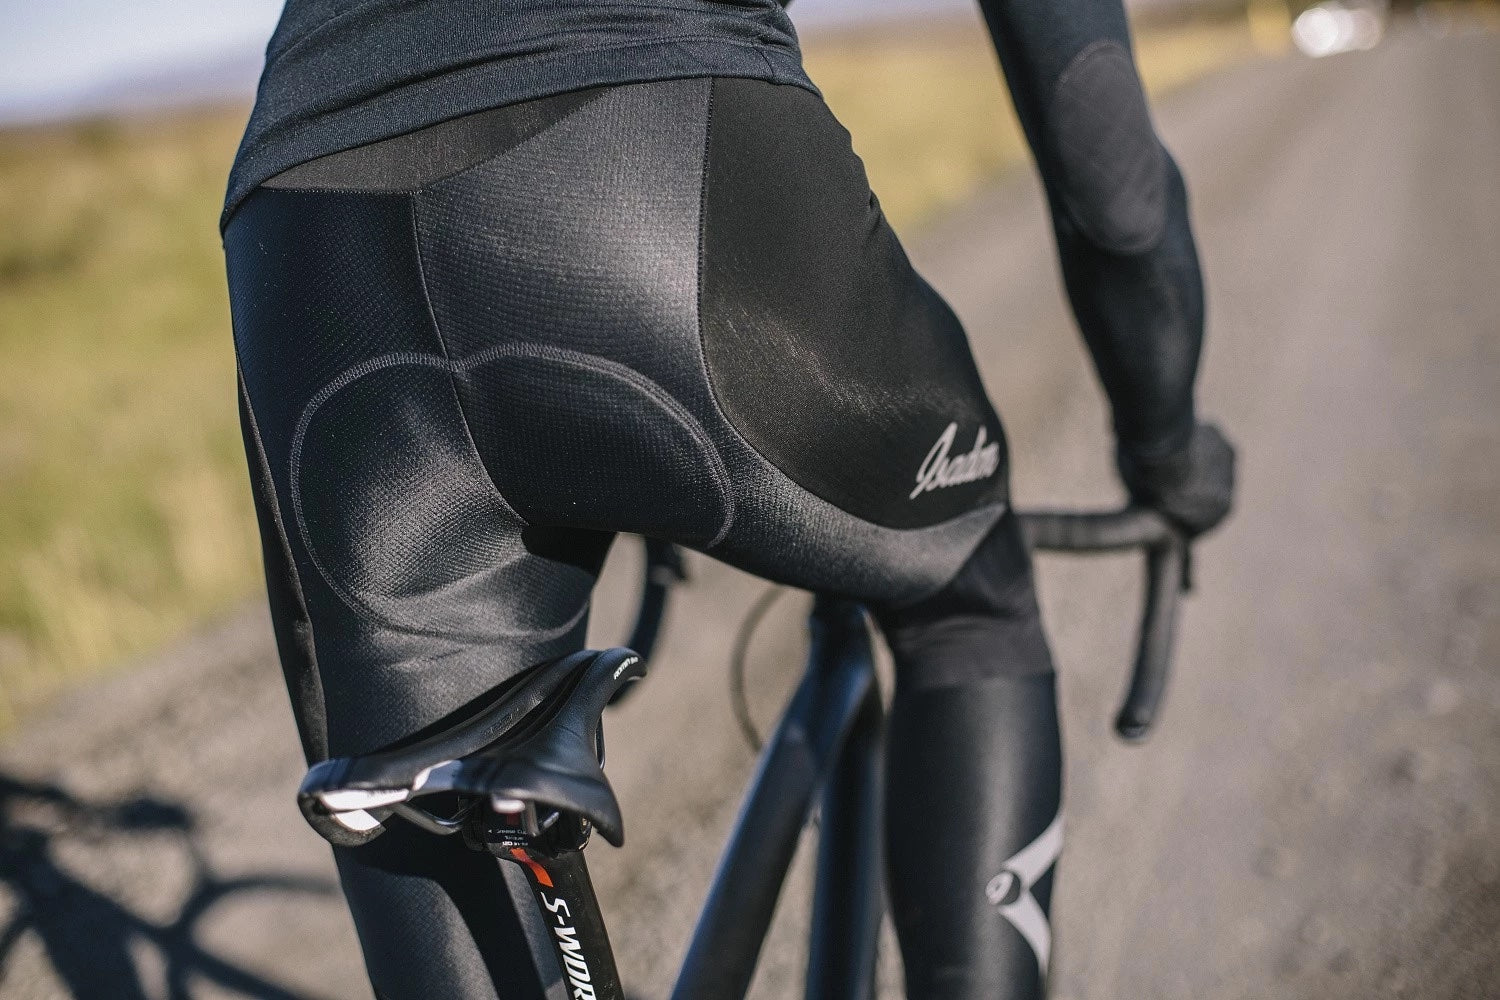 Winter bib tights for freezing conditions